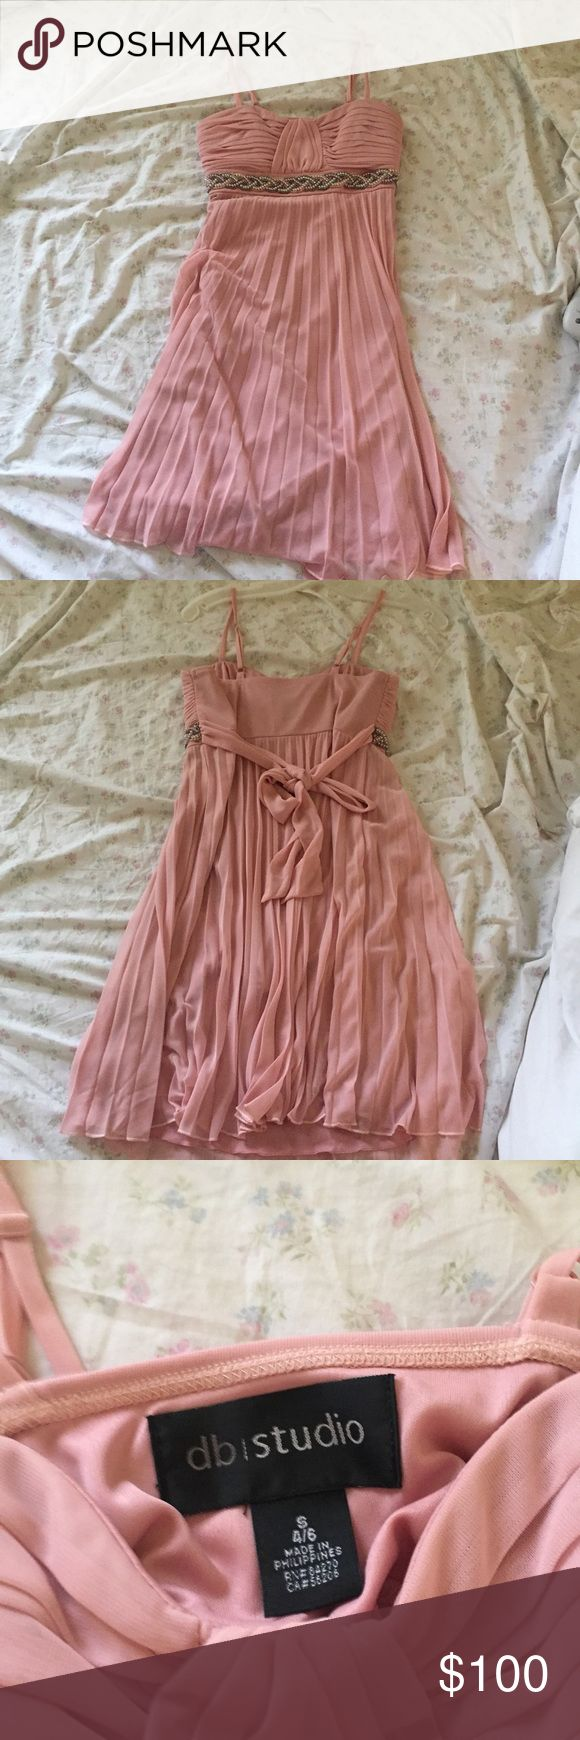 Pink Sequenced Dress This dress has only been worn once. It is in perfect condition and is perfect for any formal event! Size Small 4/6. Originally bought from Dave and bridals. NO TRADES. Dave & Bridals Dresses Prom